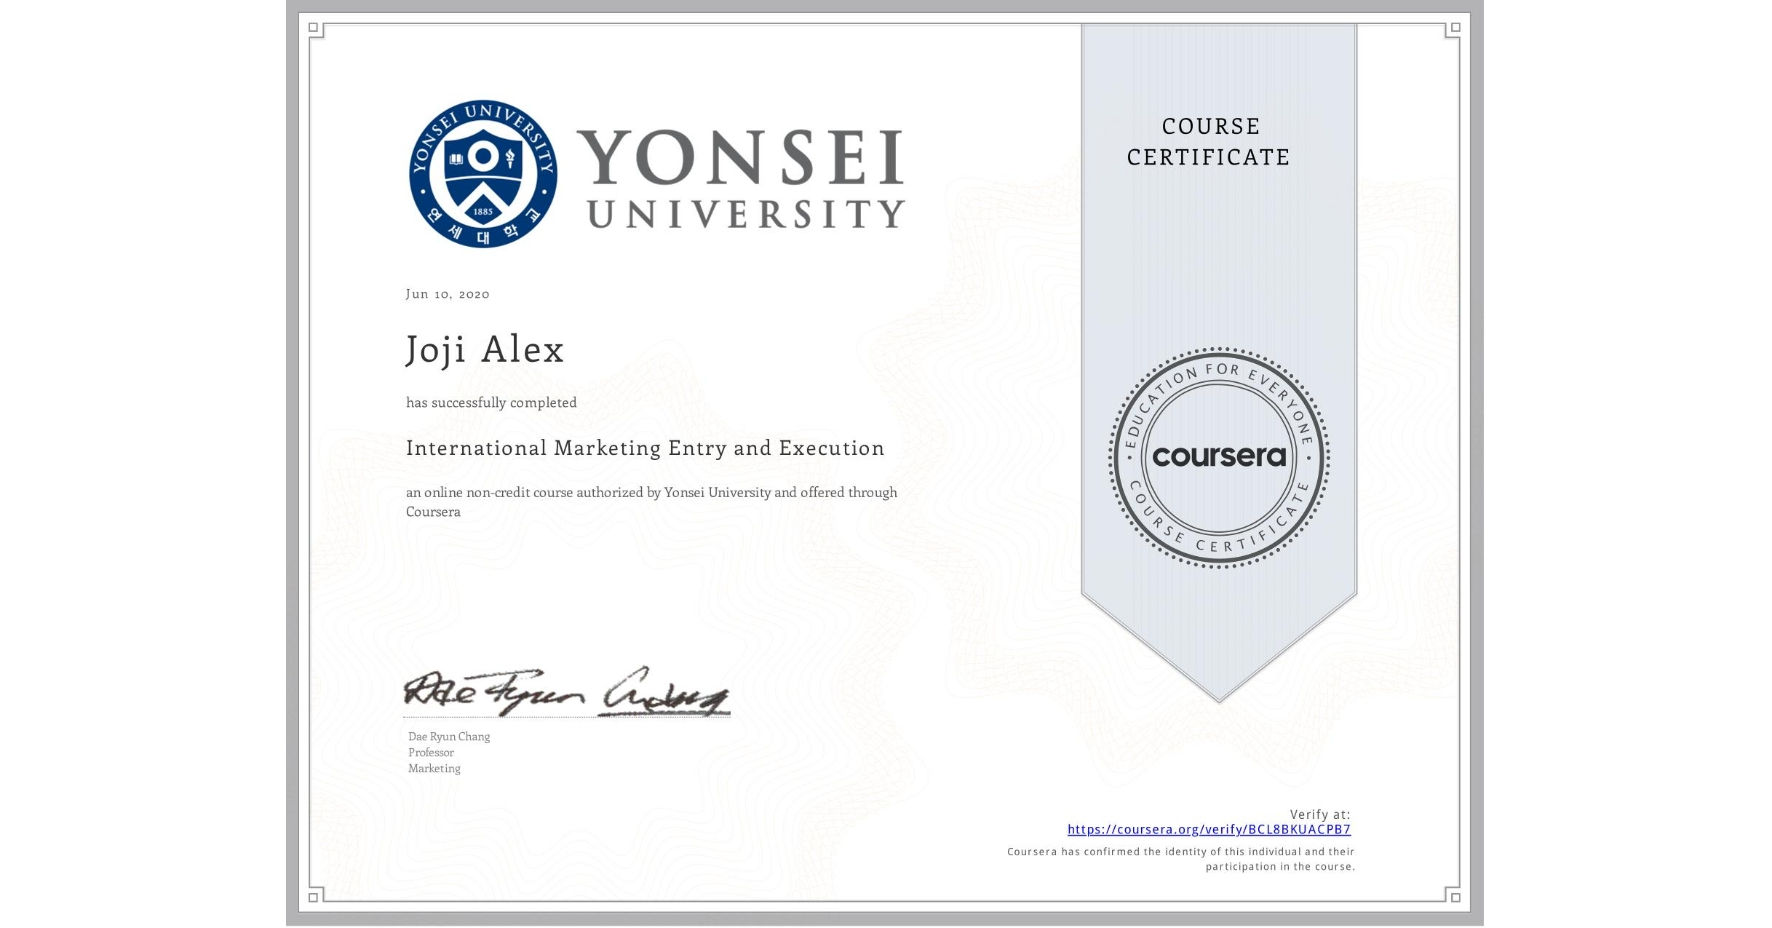 View certificate for Joji Alex, International Marketing Entry and Execution, an online non-credit course authorized by Yonsei University and offered through Coursera